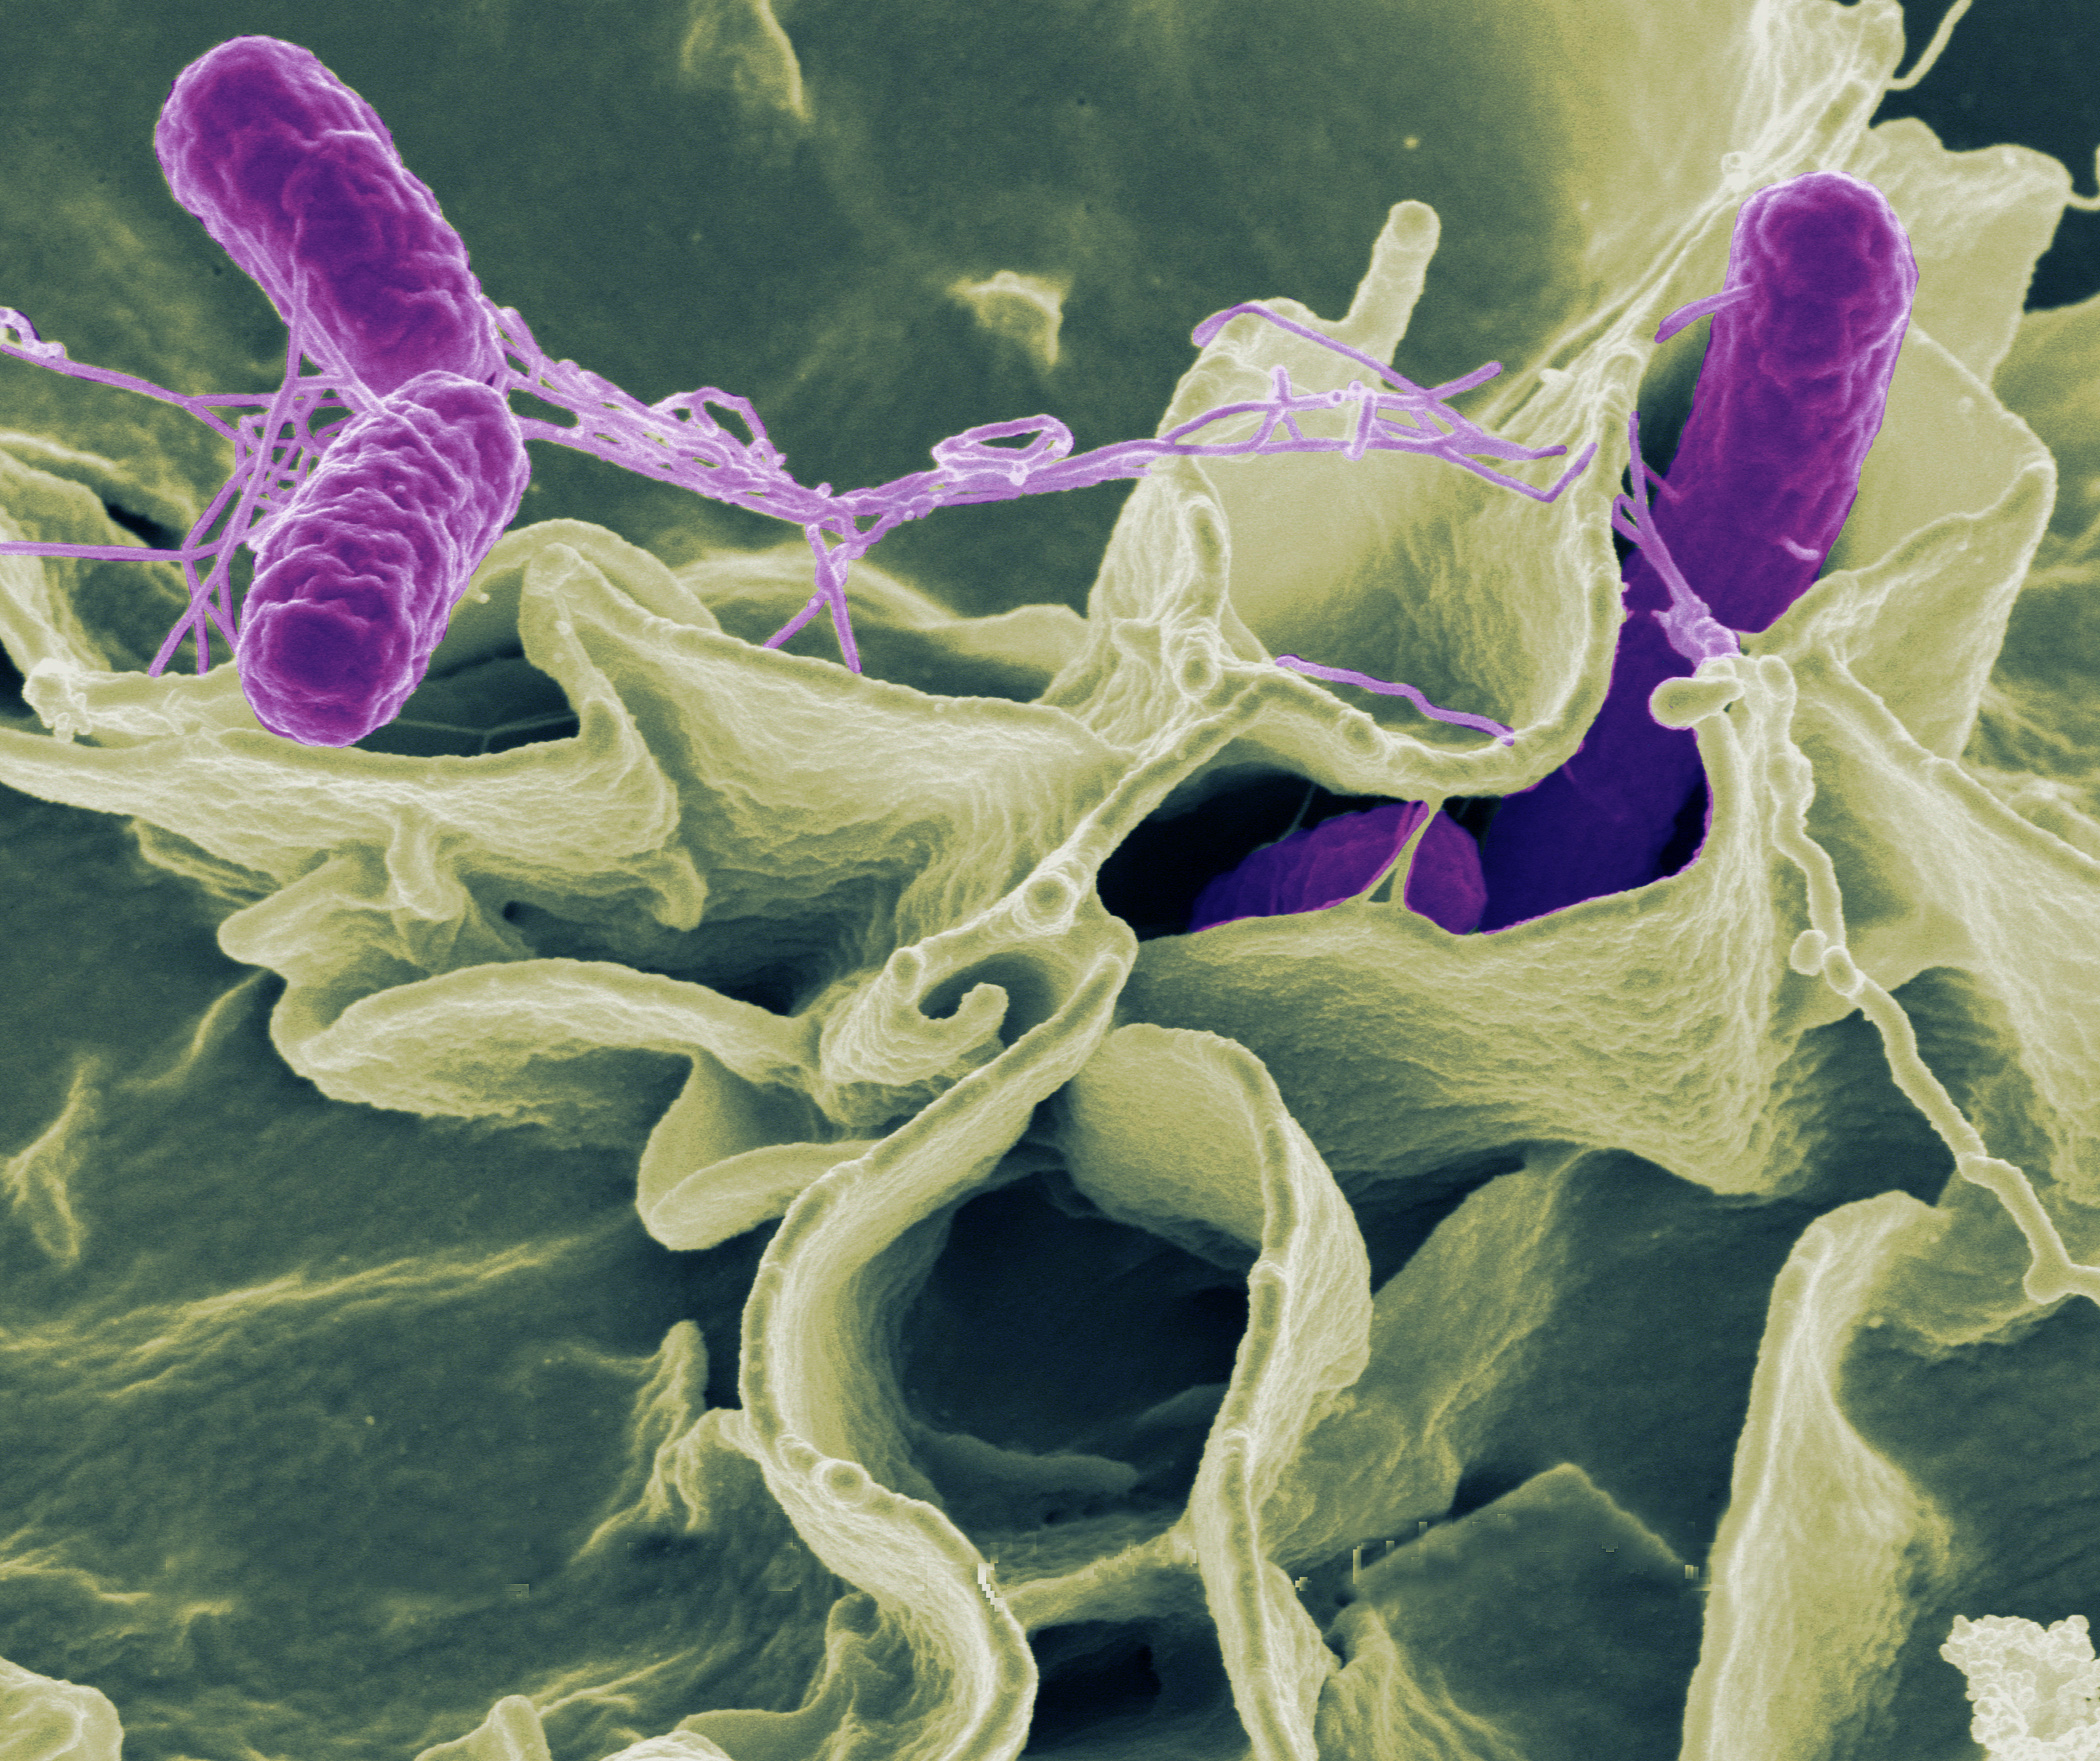 Emerging Microbes & Infection Photo